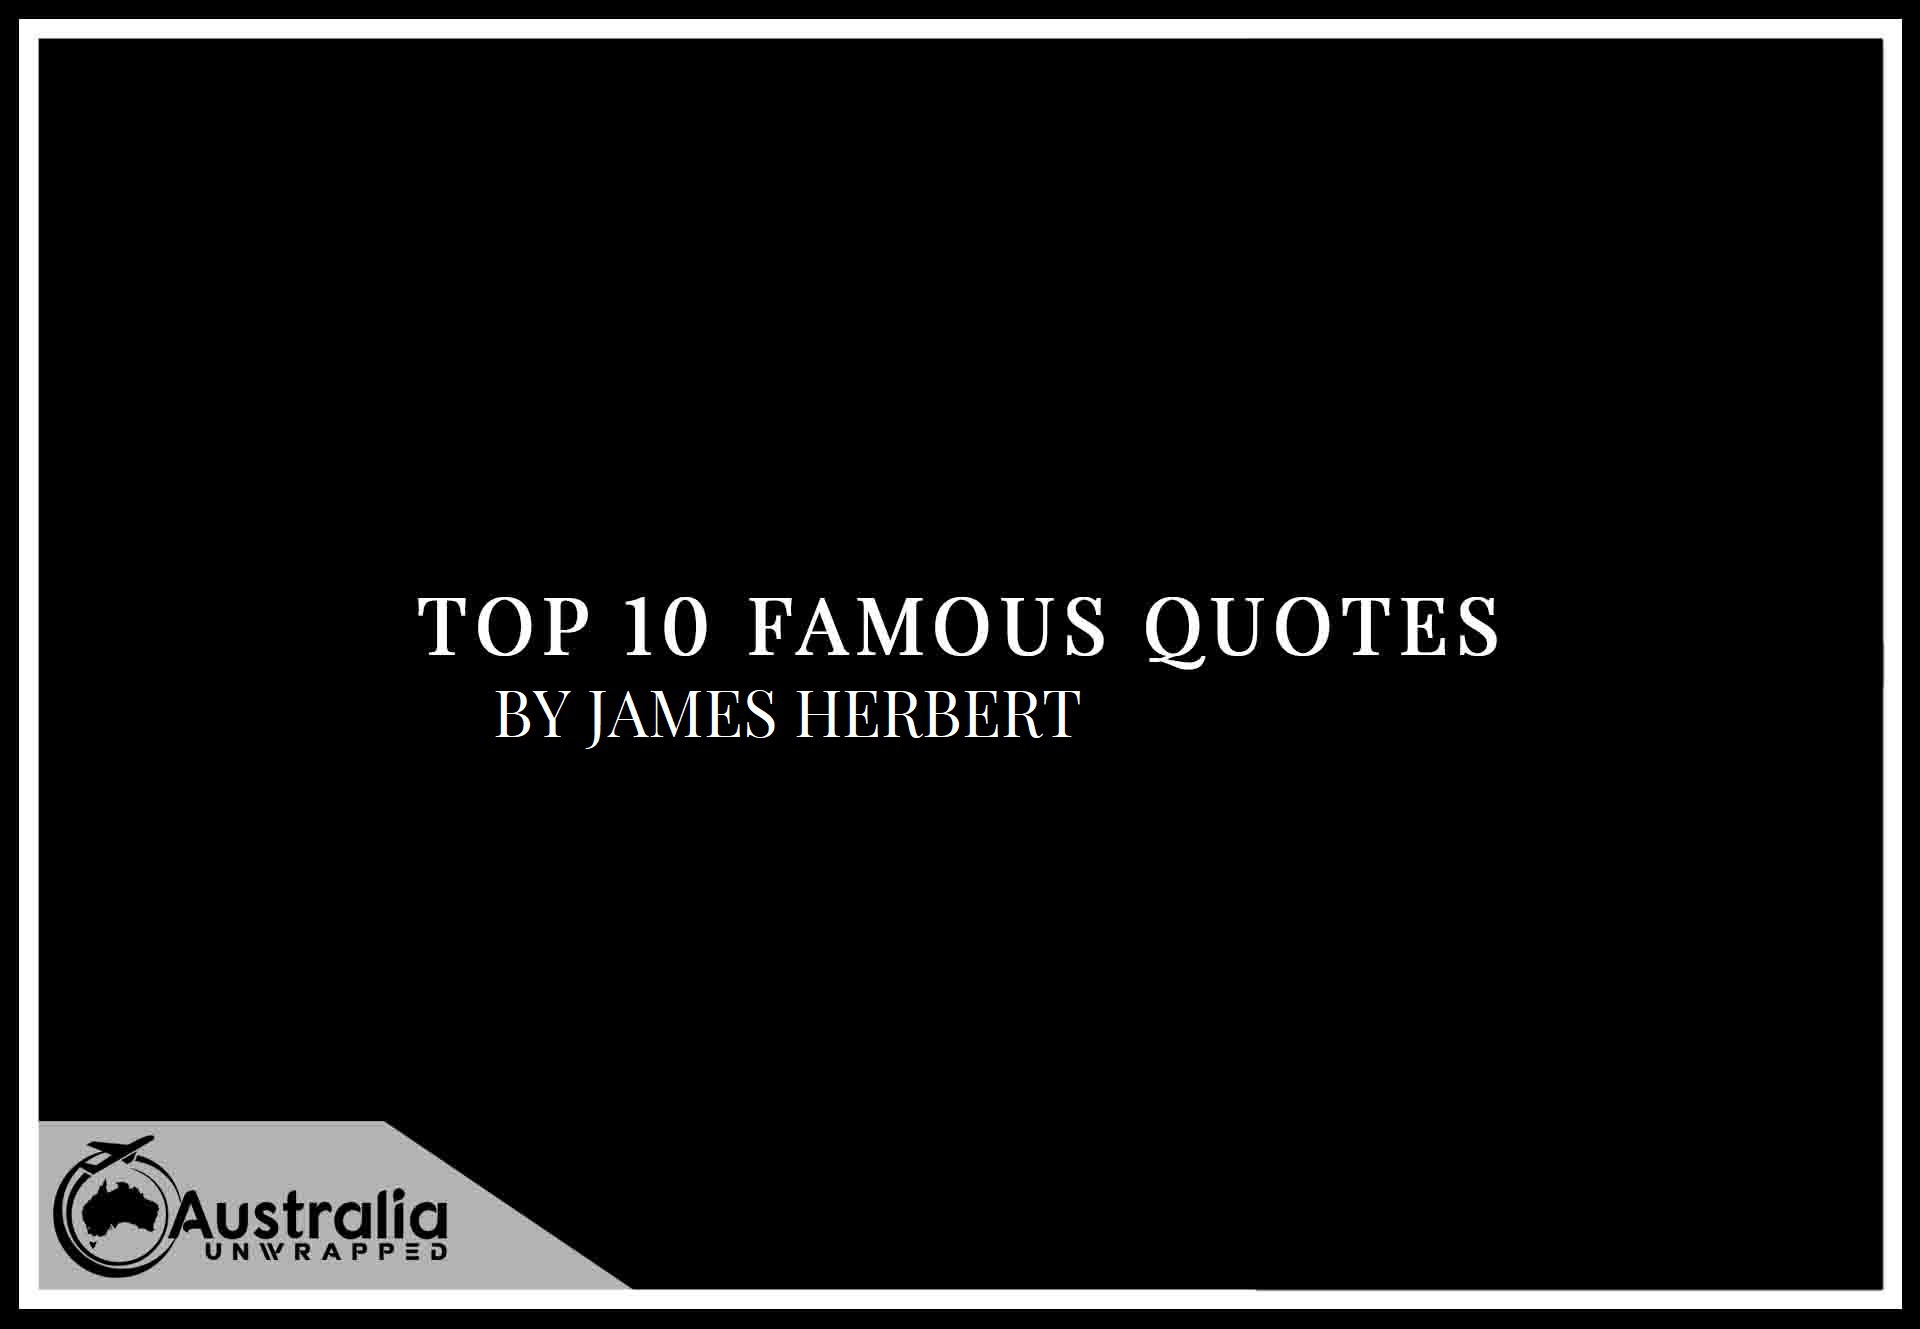 Top 10 Famous Quotes by Author James Herbert